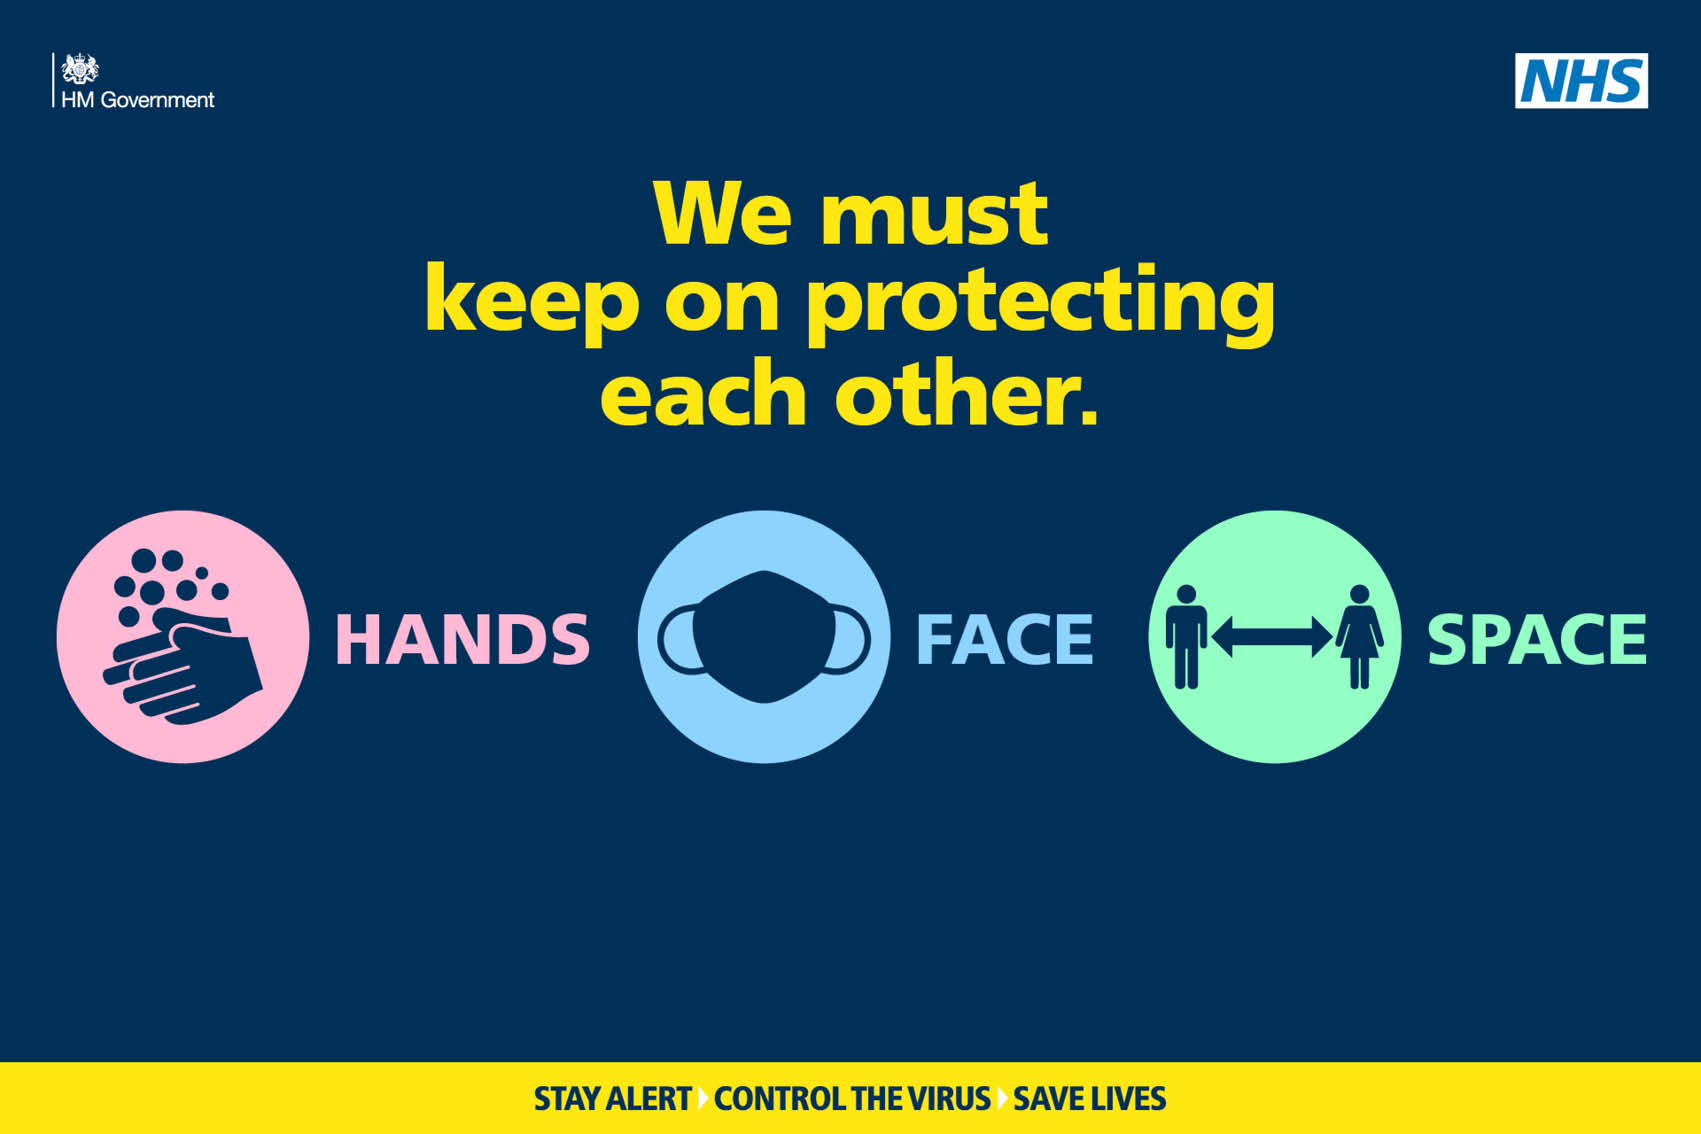 GOV.UK guidance. Hands, face, space.